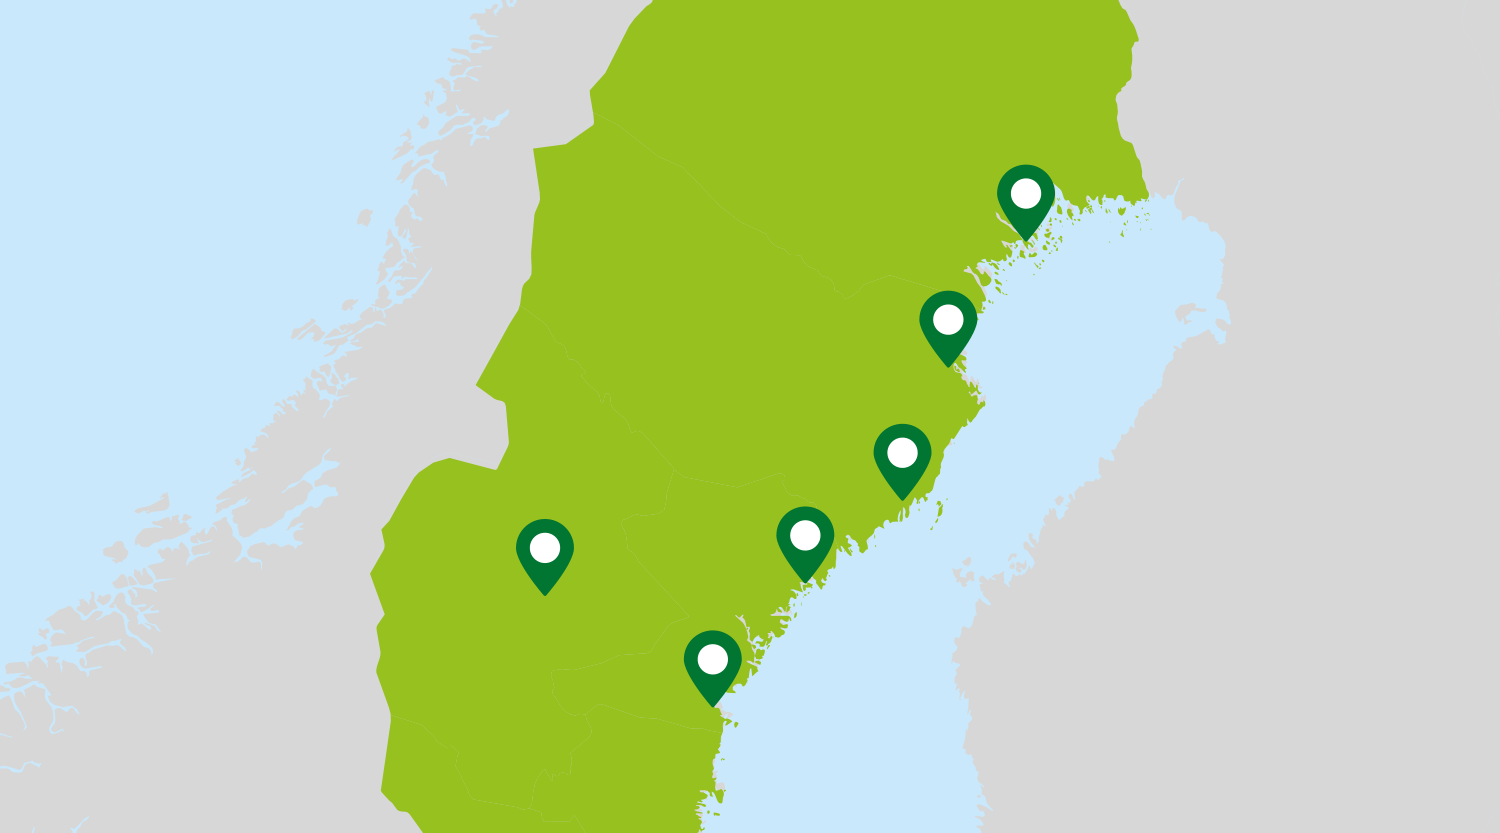 A map of northern Sweden showing where the six biggest cities in the northern part of Sweden are located